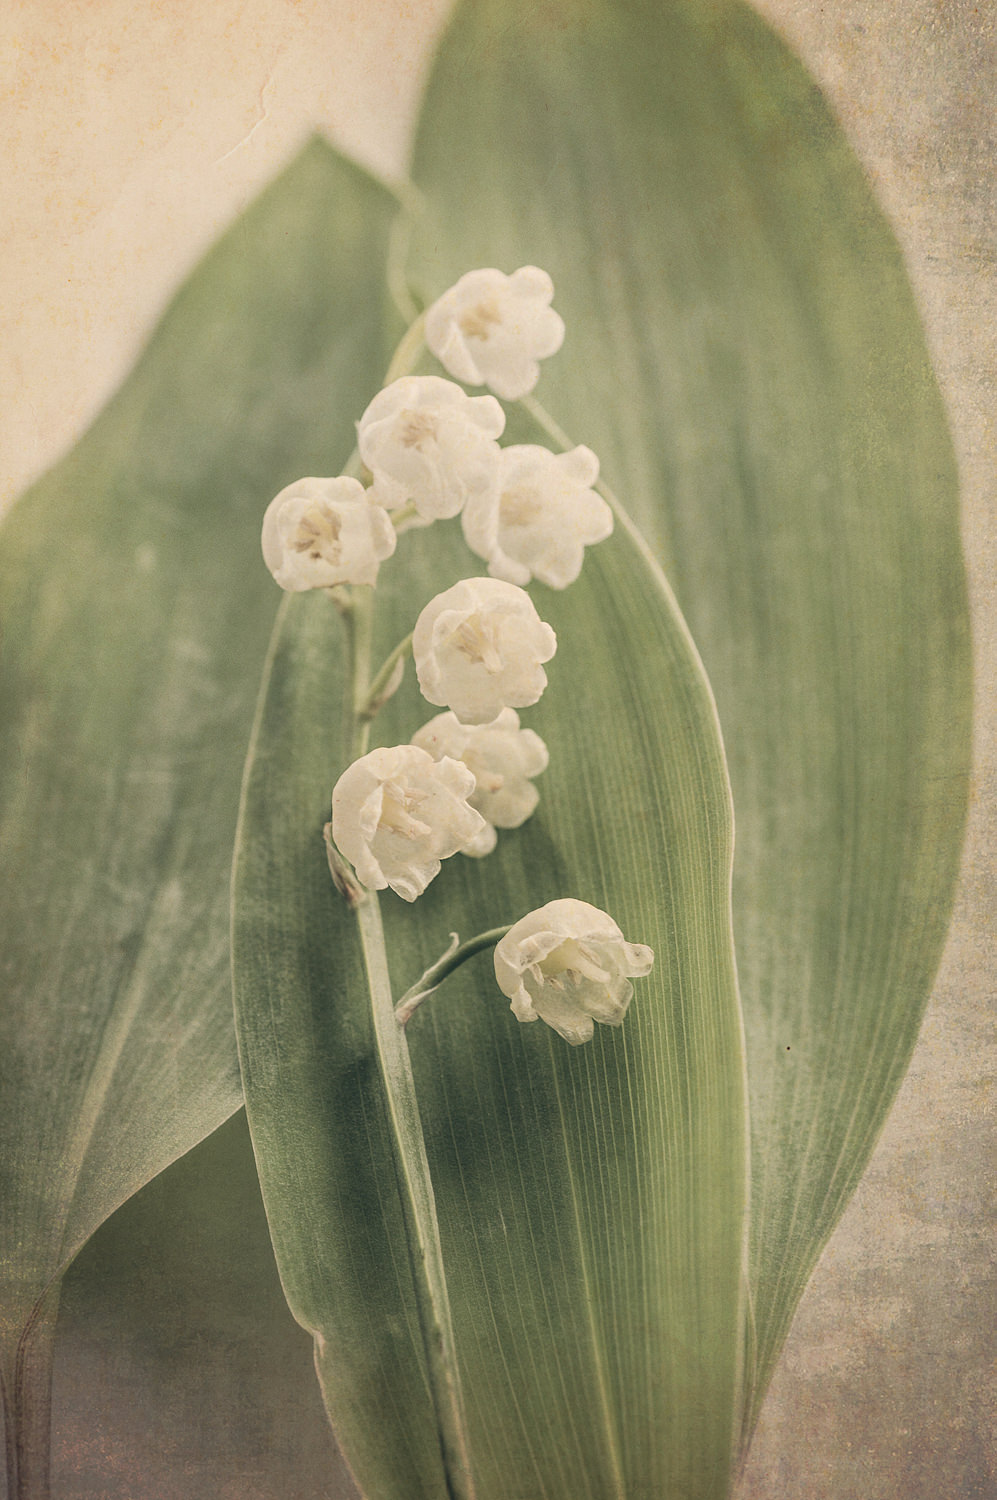 Scents of Spring - Lily of the Valley vi